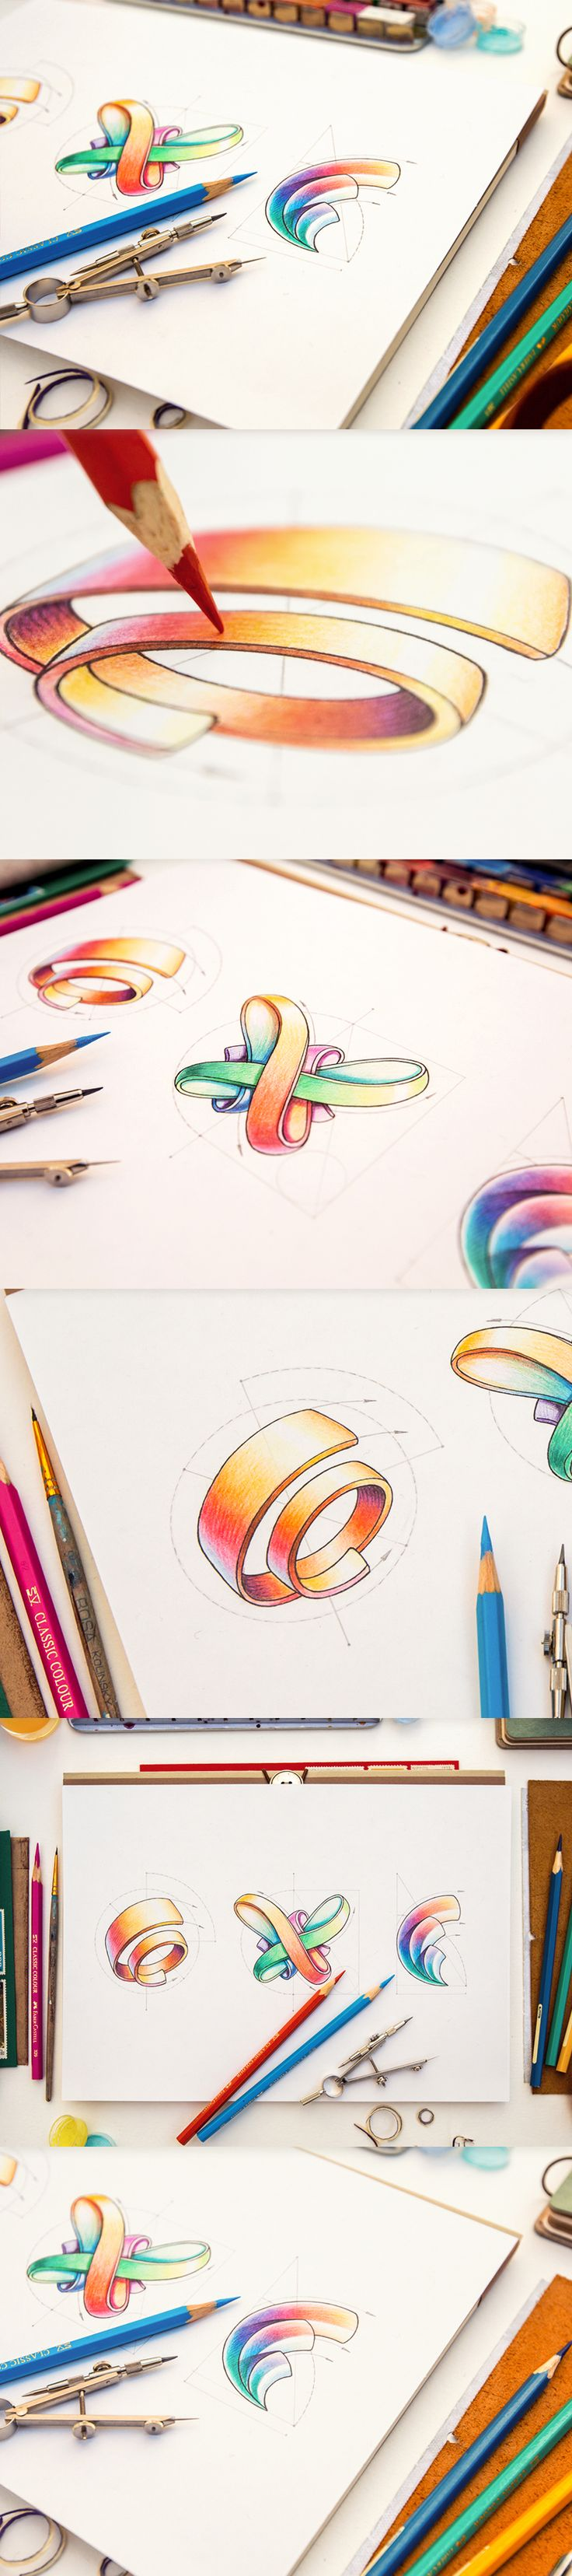 Love the shading and coloring on these logos. My favorite is the one on the left, the ribbon one. The shading is awesome on these and they would look great on a business card